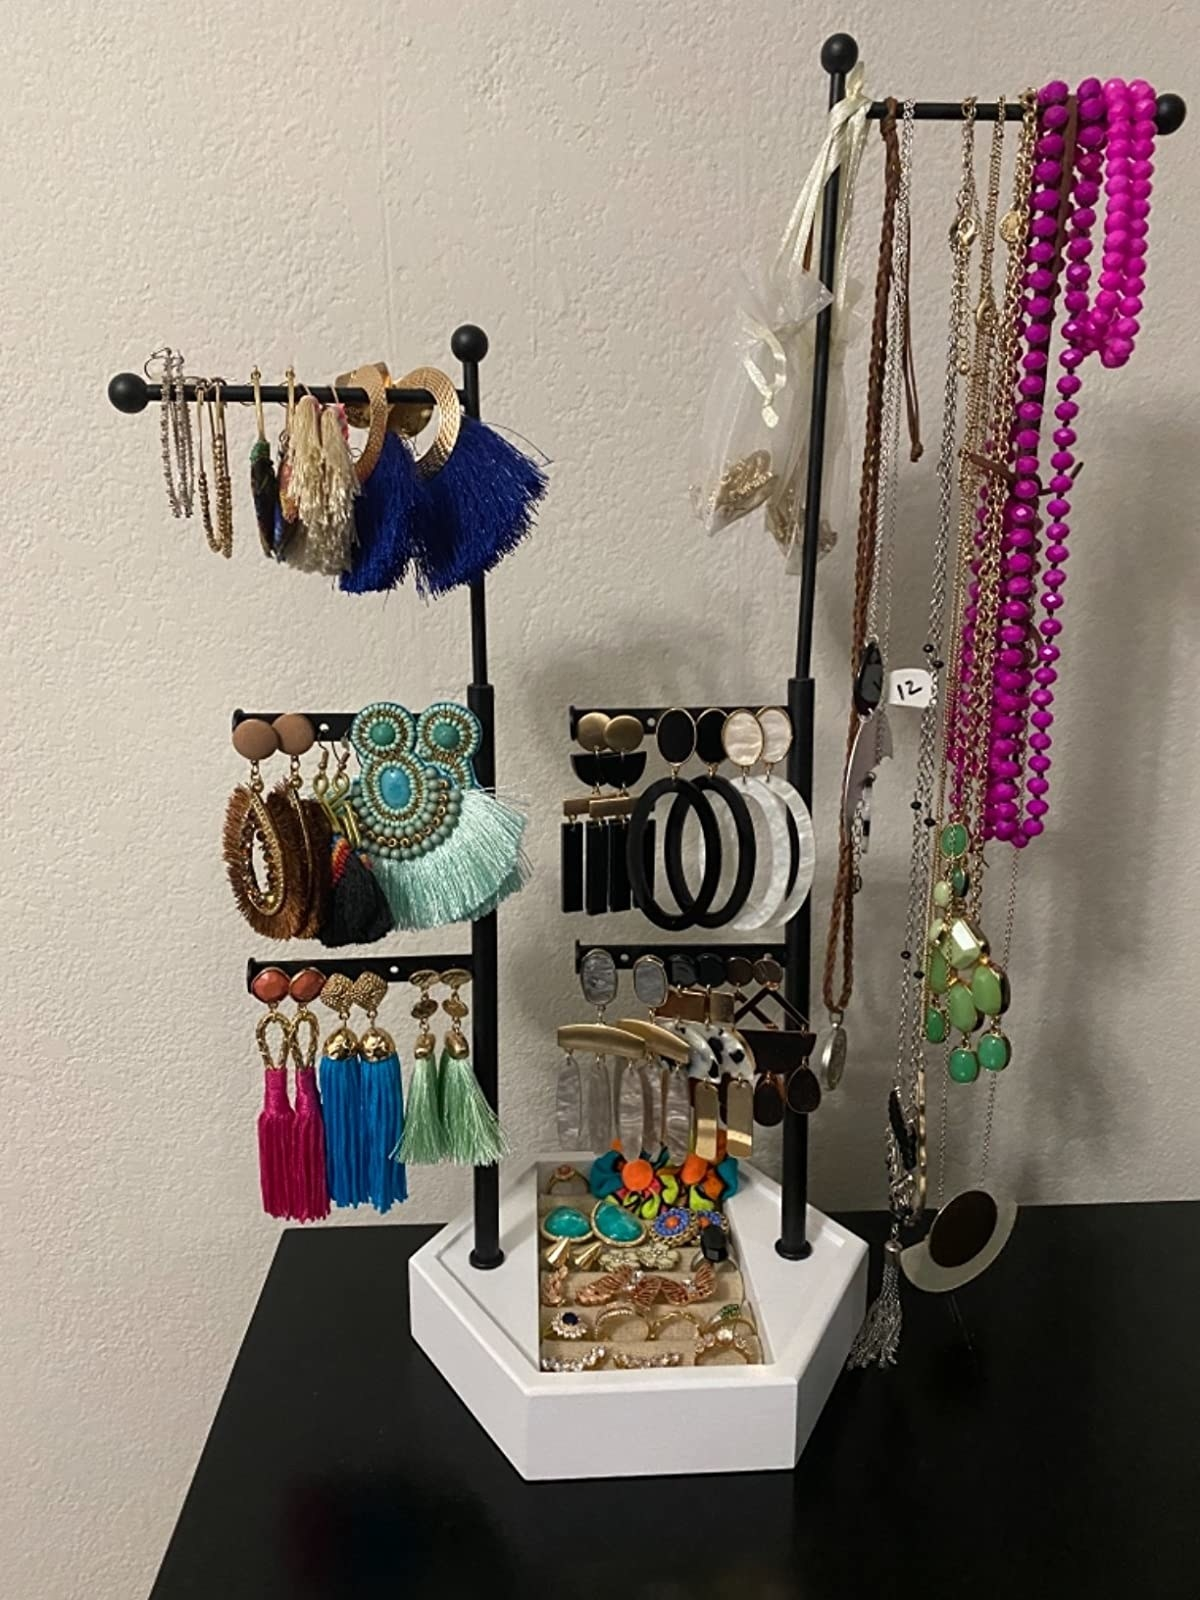 reviewer image of jewelry organized on the jewelry tree stand